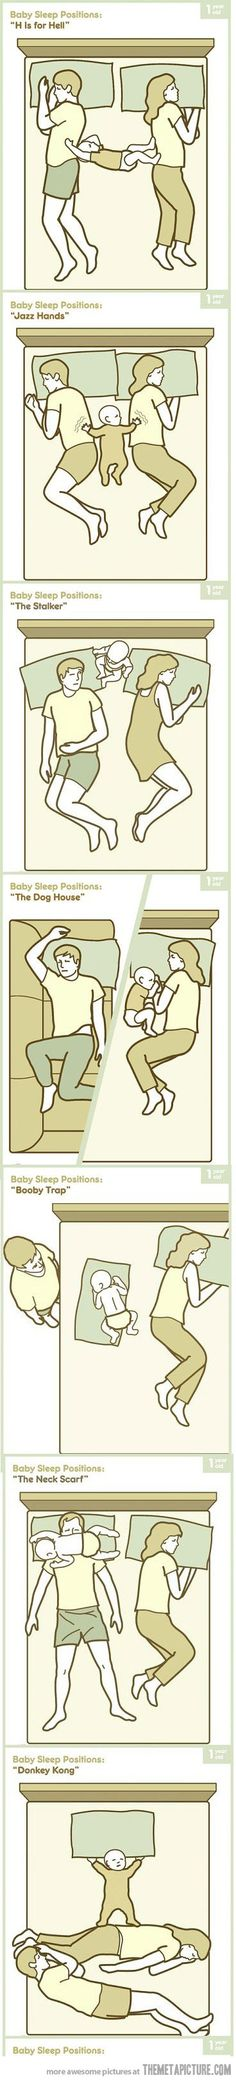 Baby sleeping positions...couldn't stop laughing at these!!!